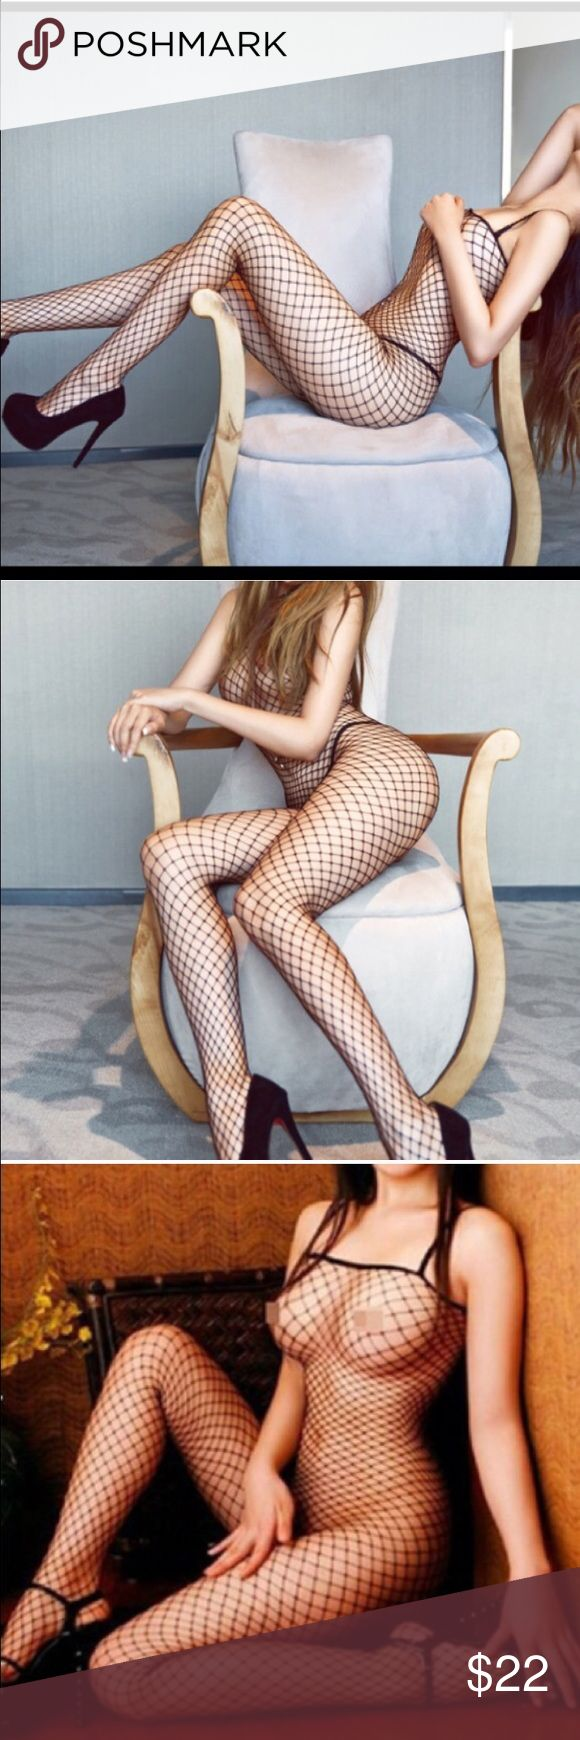 Black fish net sexy body stocking New in package. Fits xs/s/m/l Accessories Hosiery & Socks